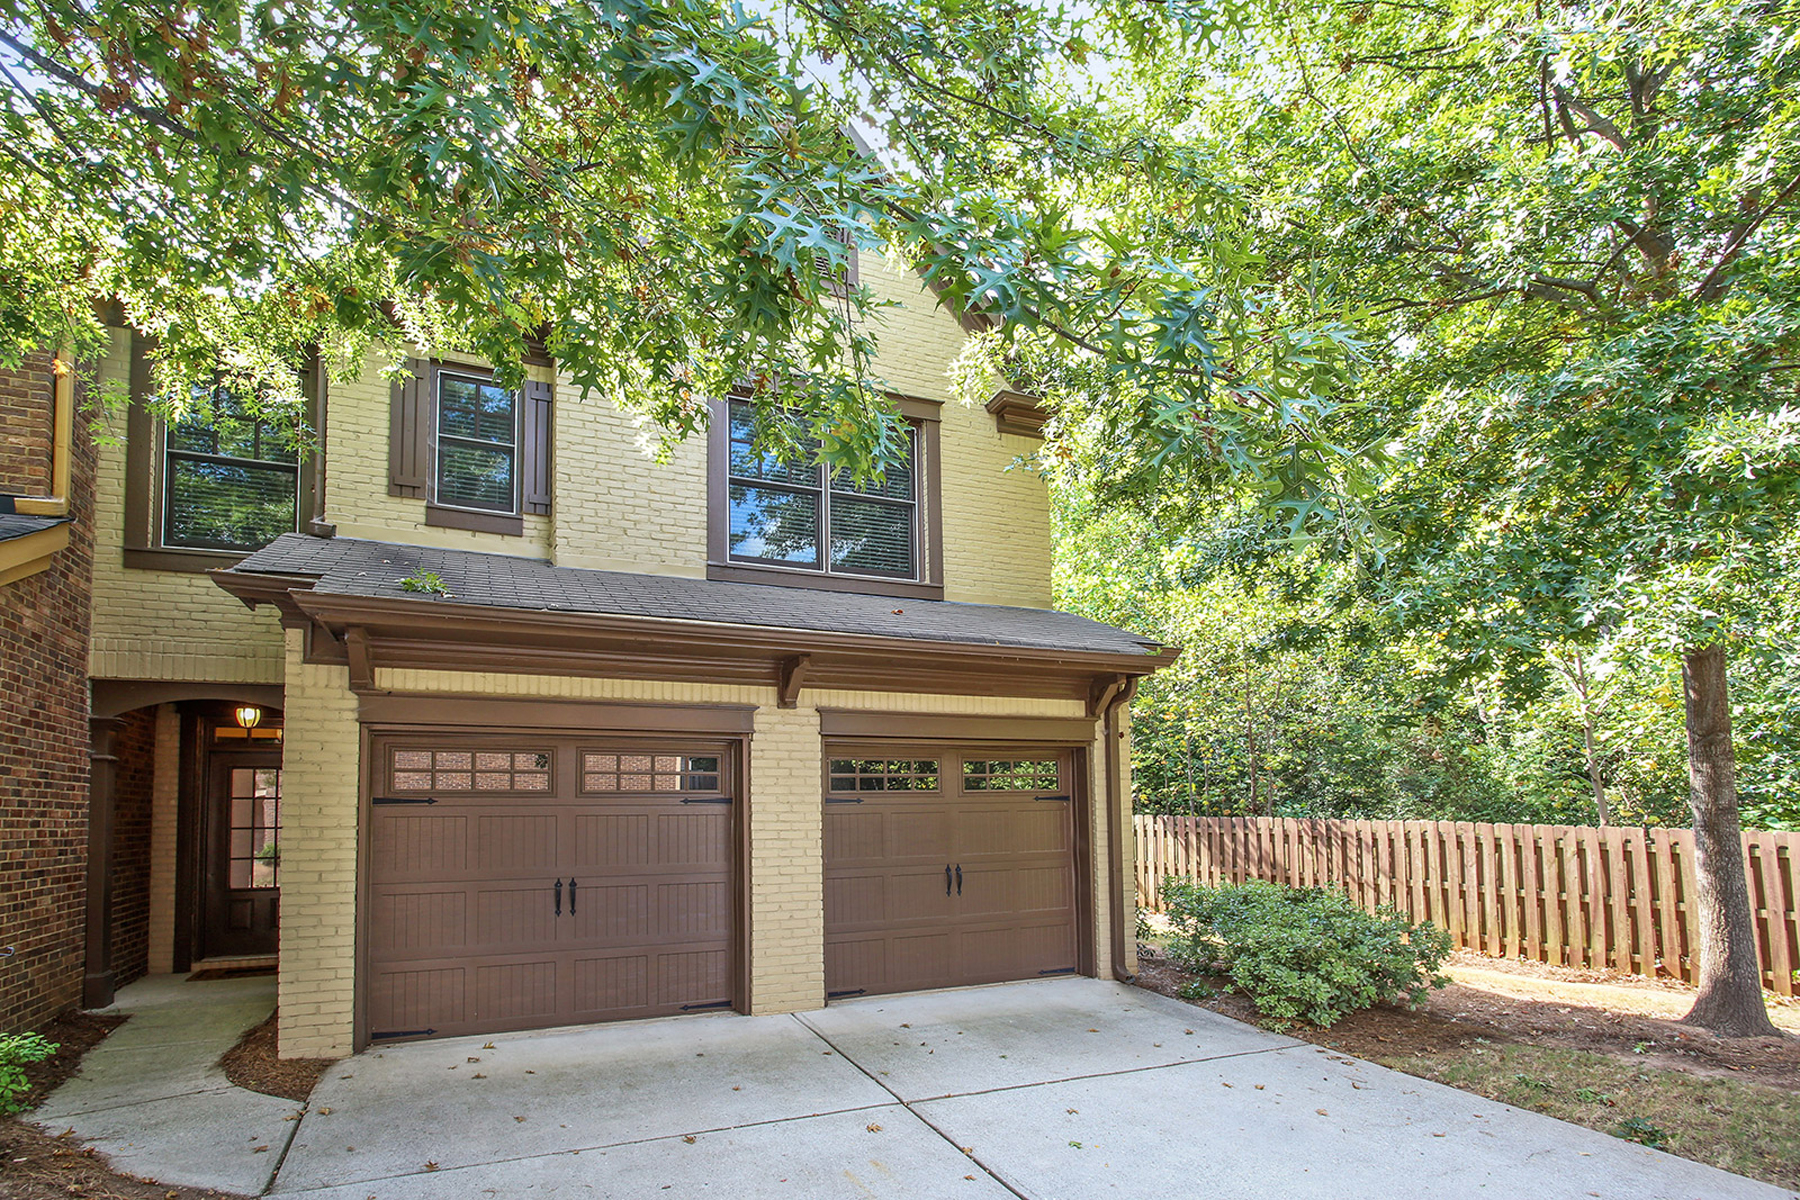 townhouses por un Venta en Beautiful End-Unit Brick Townhome In Gated Community 4942 Berkeley Oak Circle, Peachtree Corners, Georgia 30092 Estados Unidos